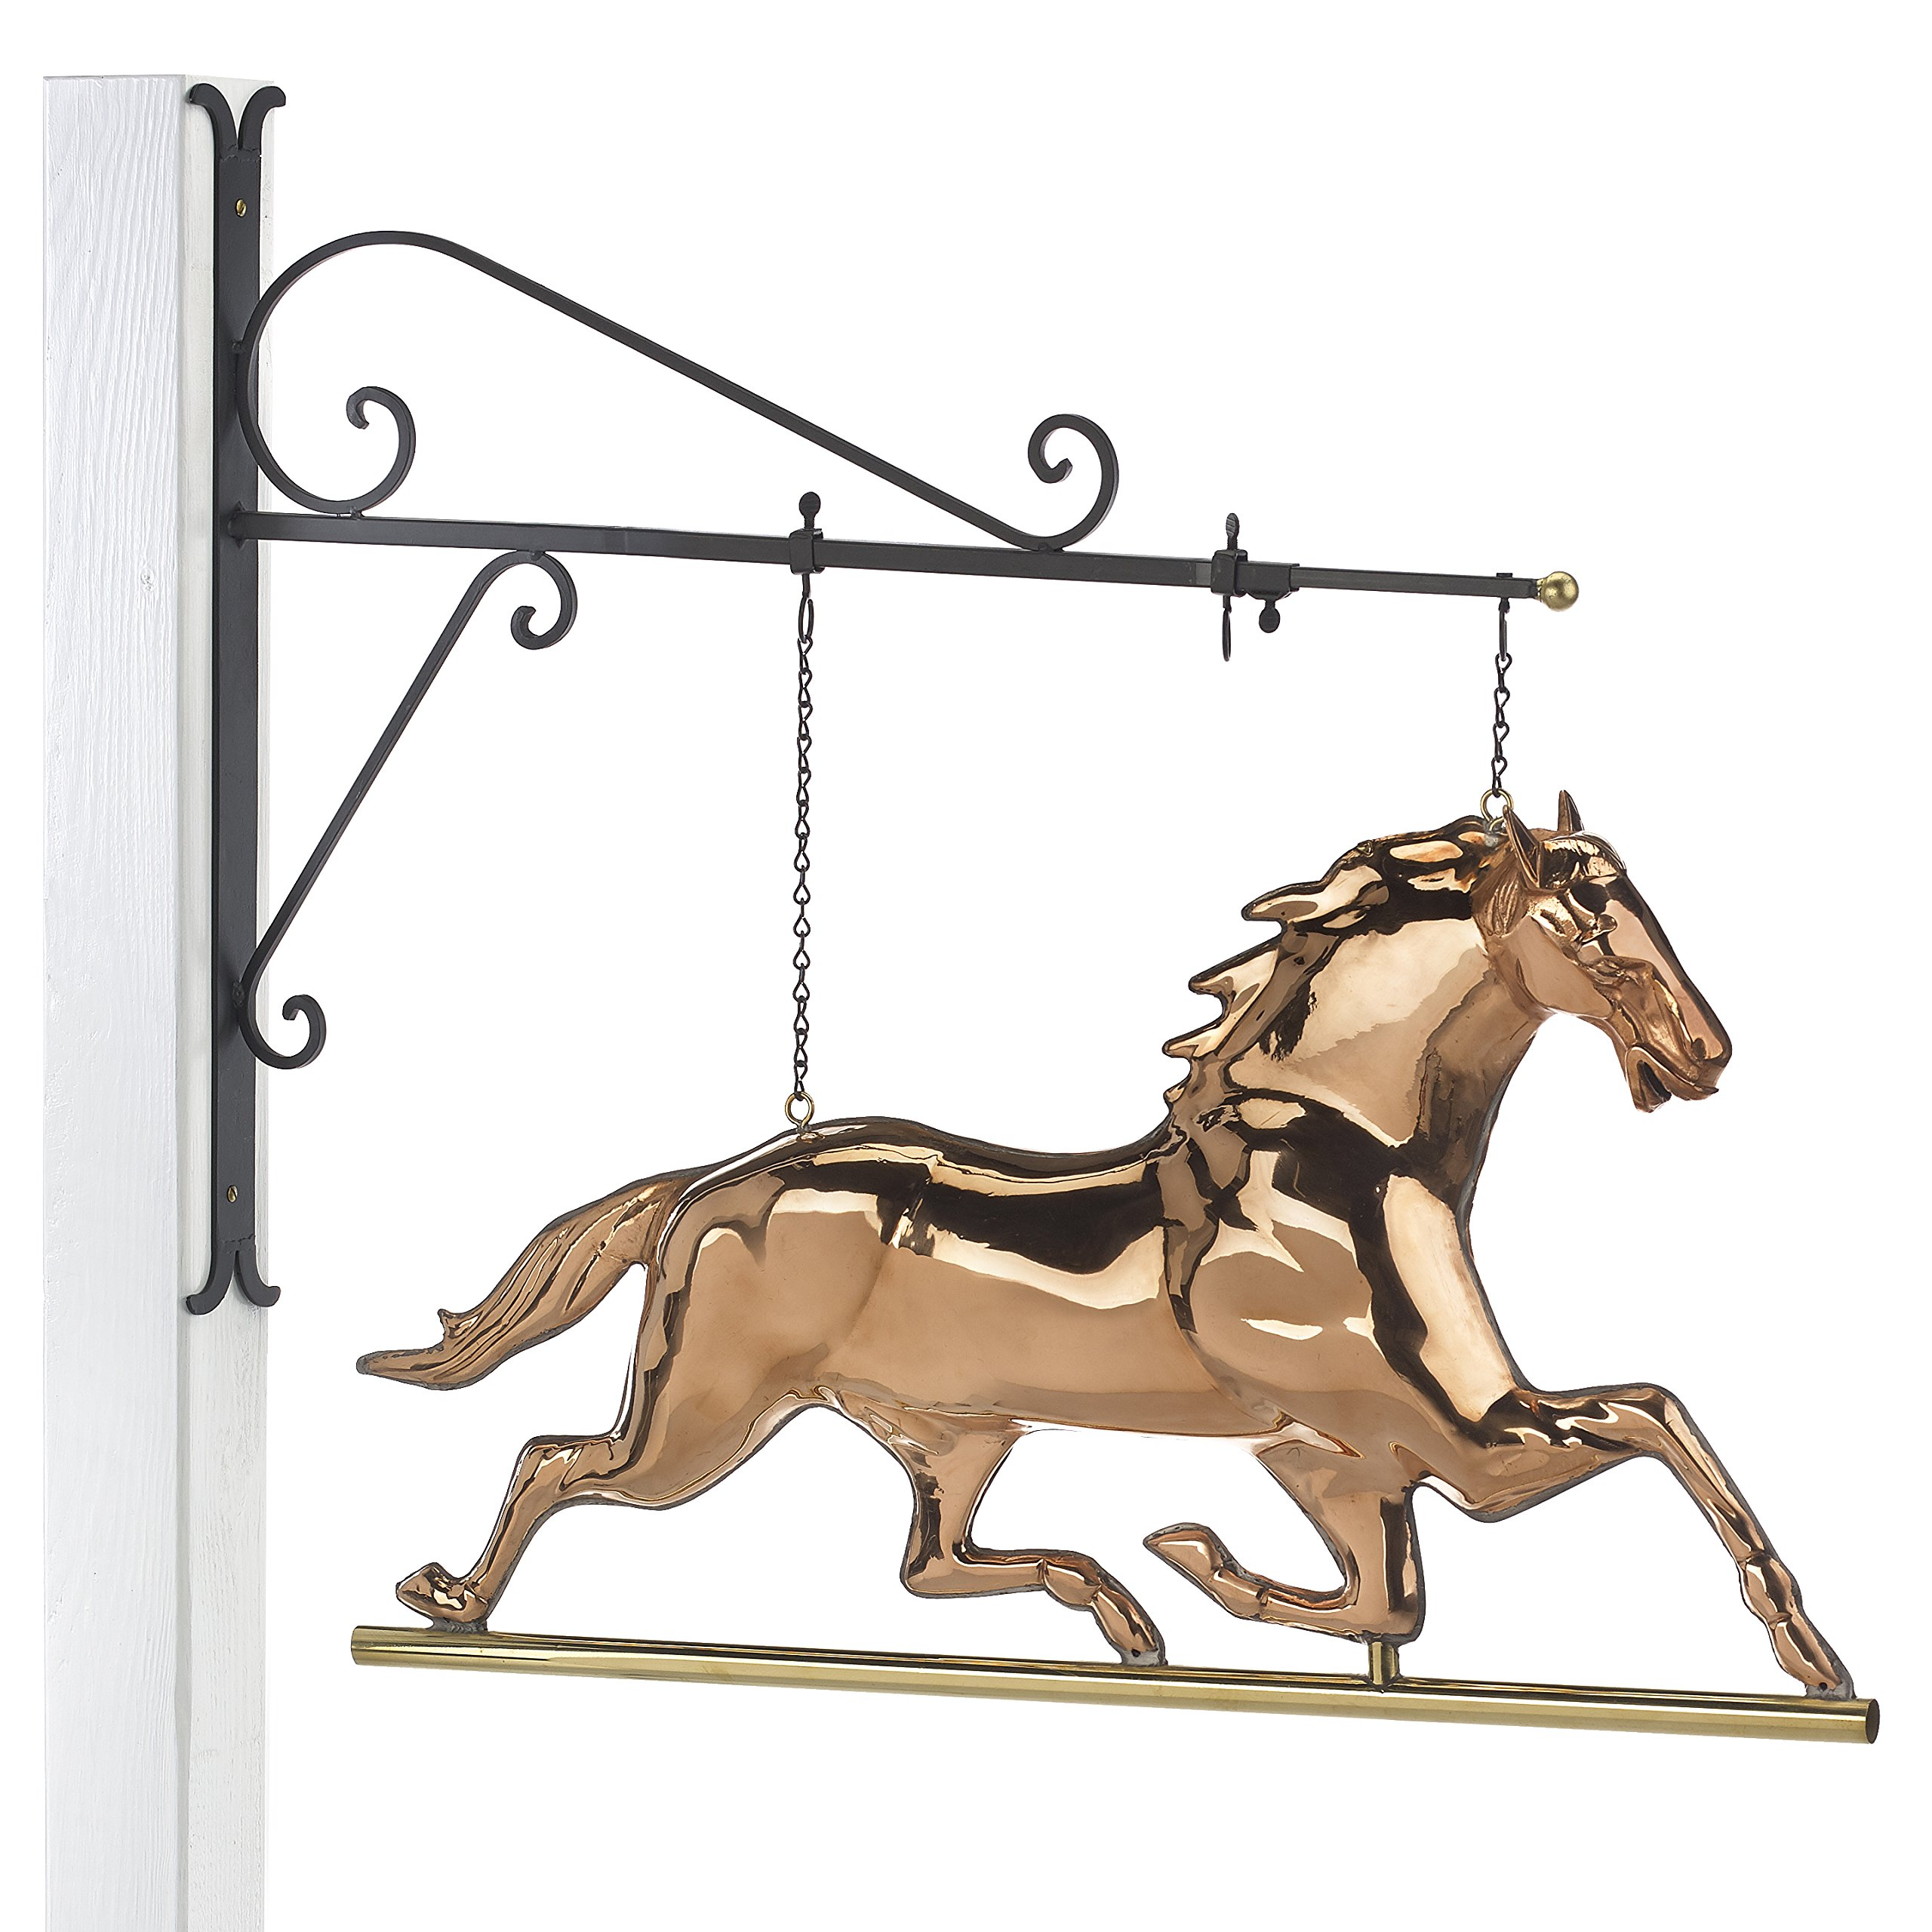 Good Directions Hanging Horse Pure Copper Weathervane Sign with Decorative Scroll Wall Bracket - Welcome Sign, Home / Entrance / Entryway Décor